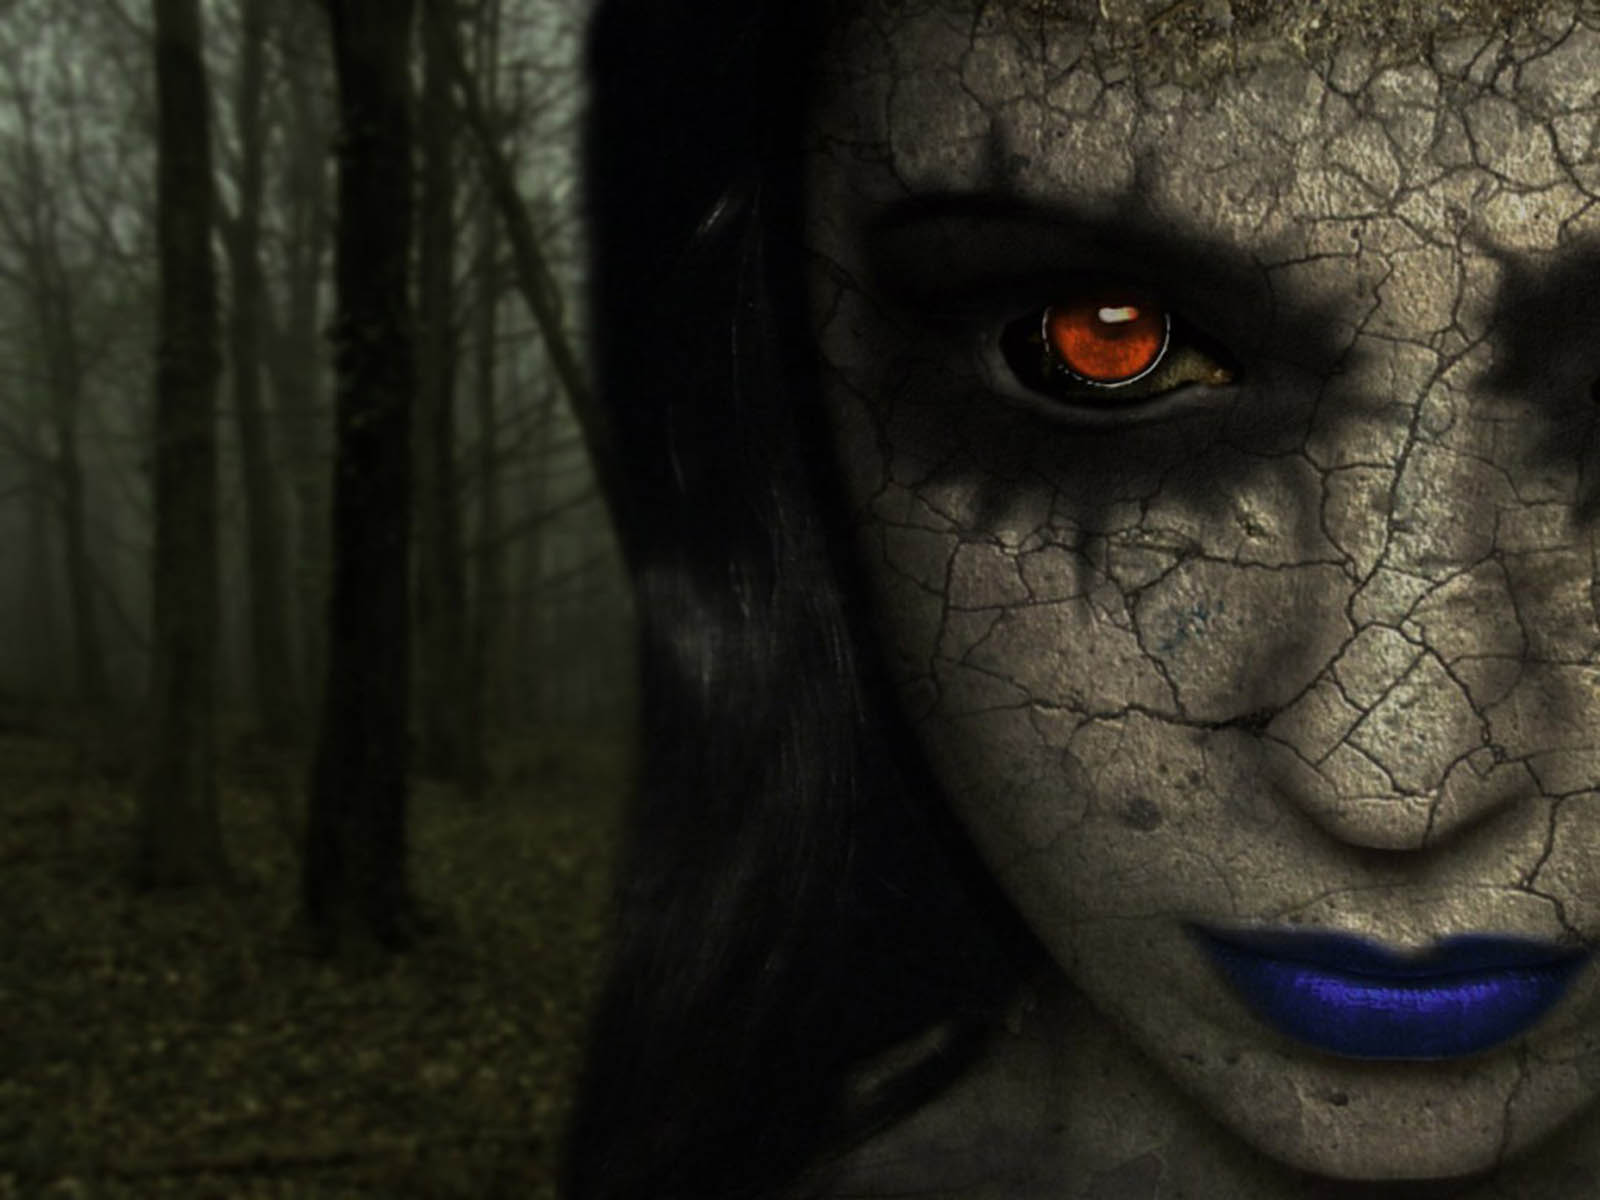 Horror Wallpapers Images Photos Pictures and Backgrounds for 1600x1200